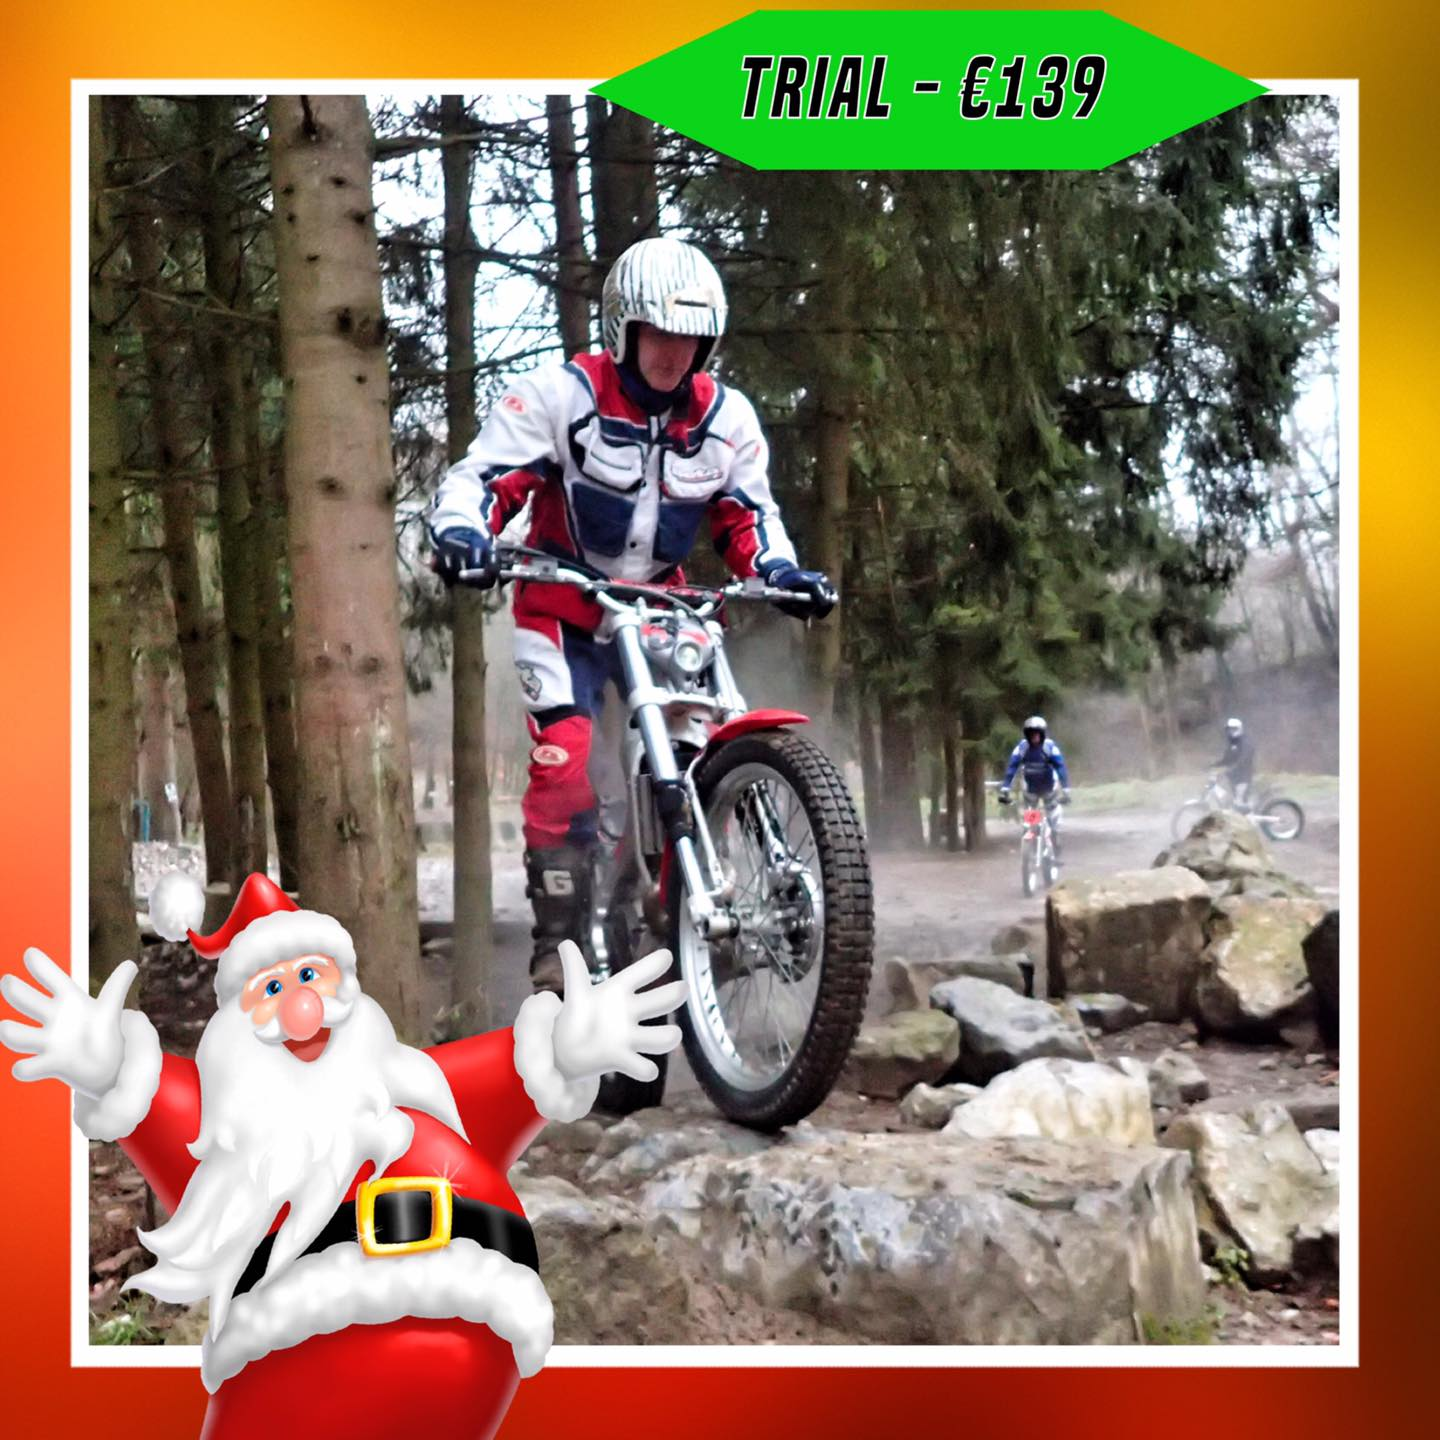 Kerst-initiaties Bilstain Endurofun 31